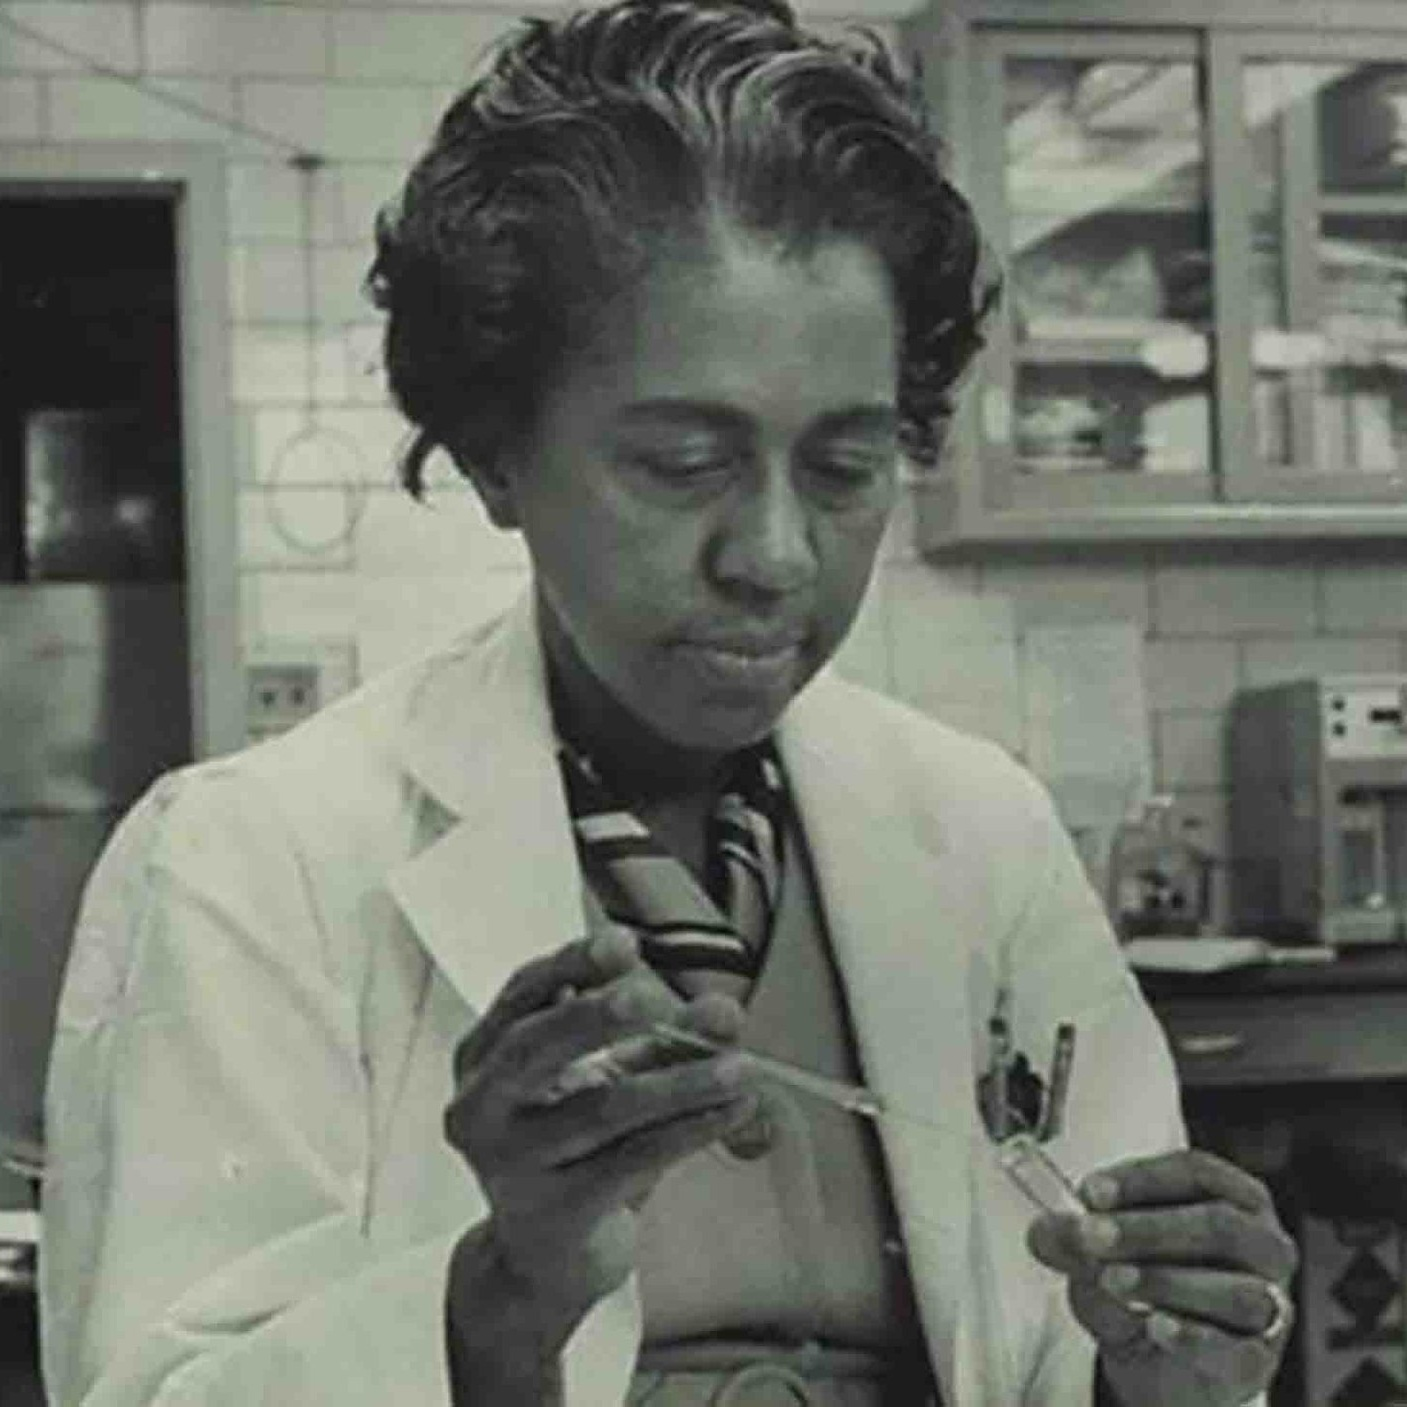 Marie Maynard Daly was biochemist and the first African American woman in the U.S. to earn a Ph.D. in chemistry.